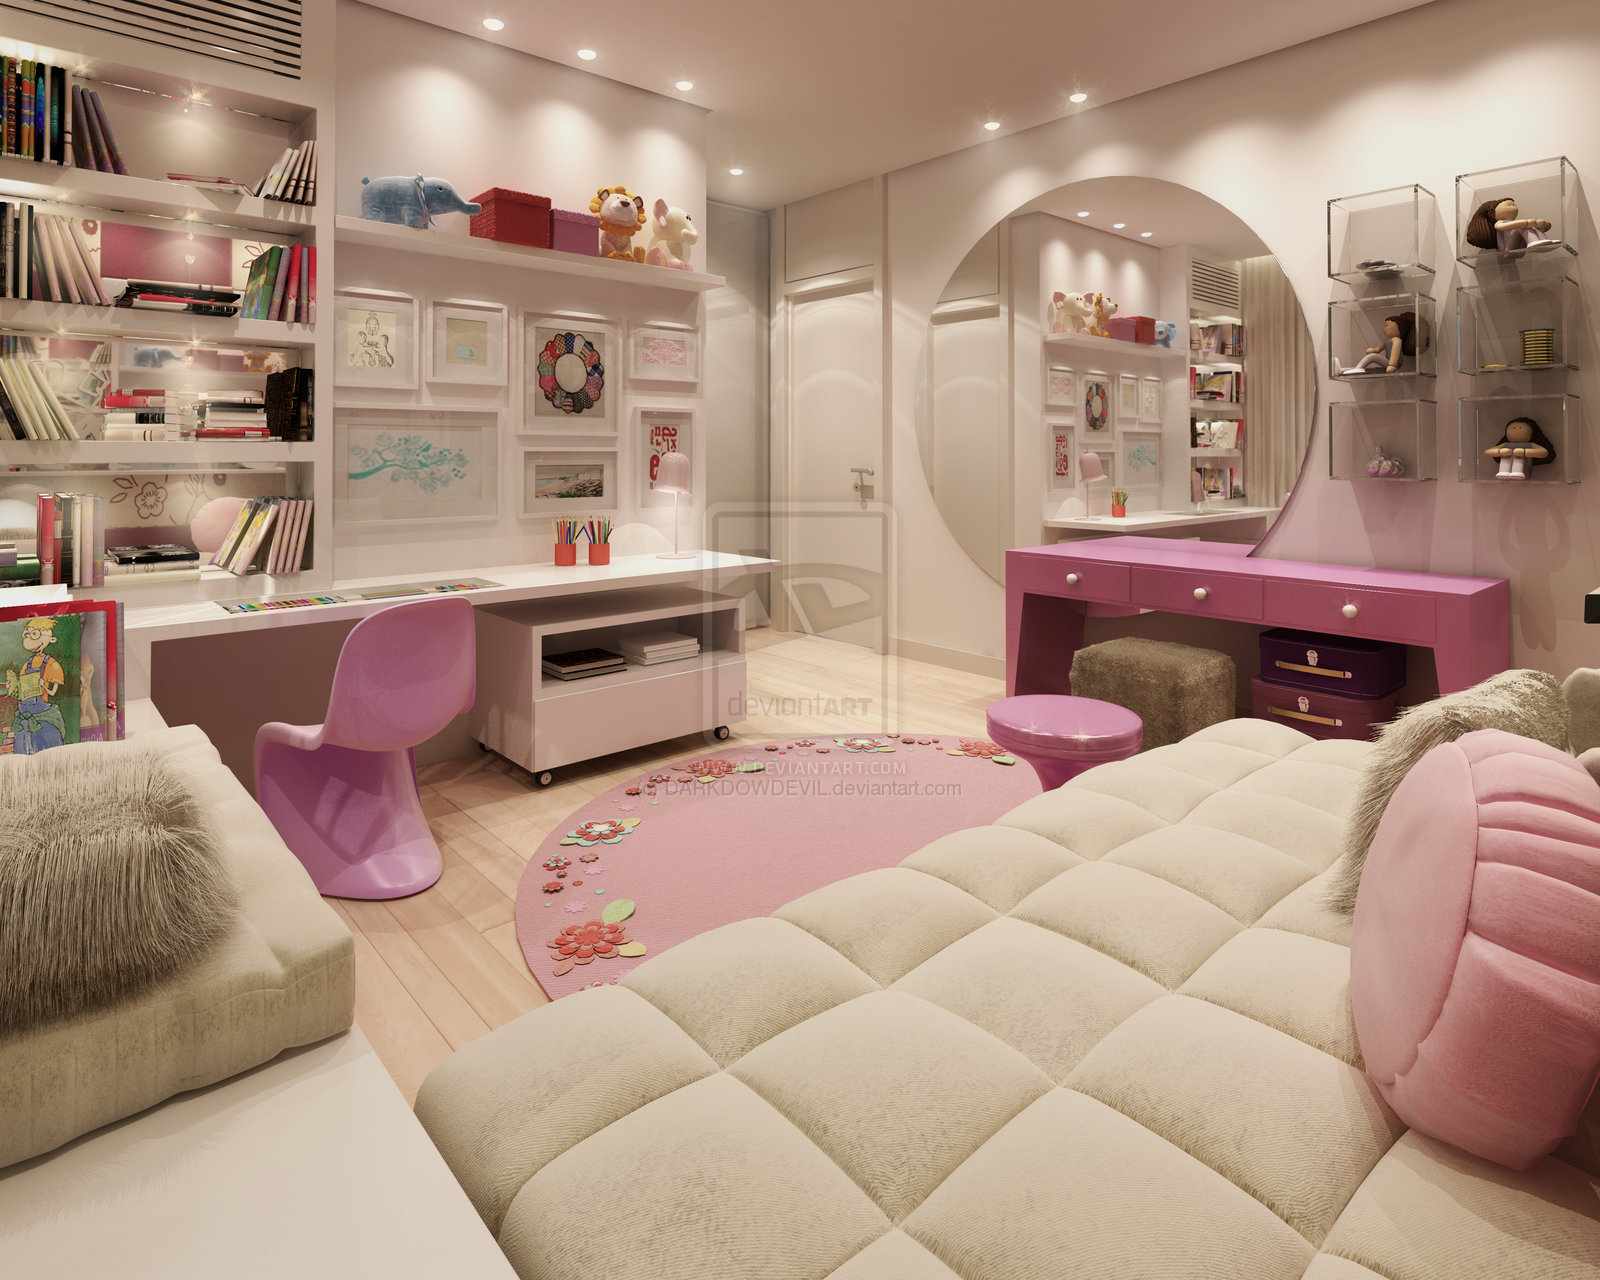 Cool bedroom designs for teenagers - Girl Bedroom2 By Darkdowdevil